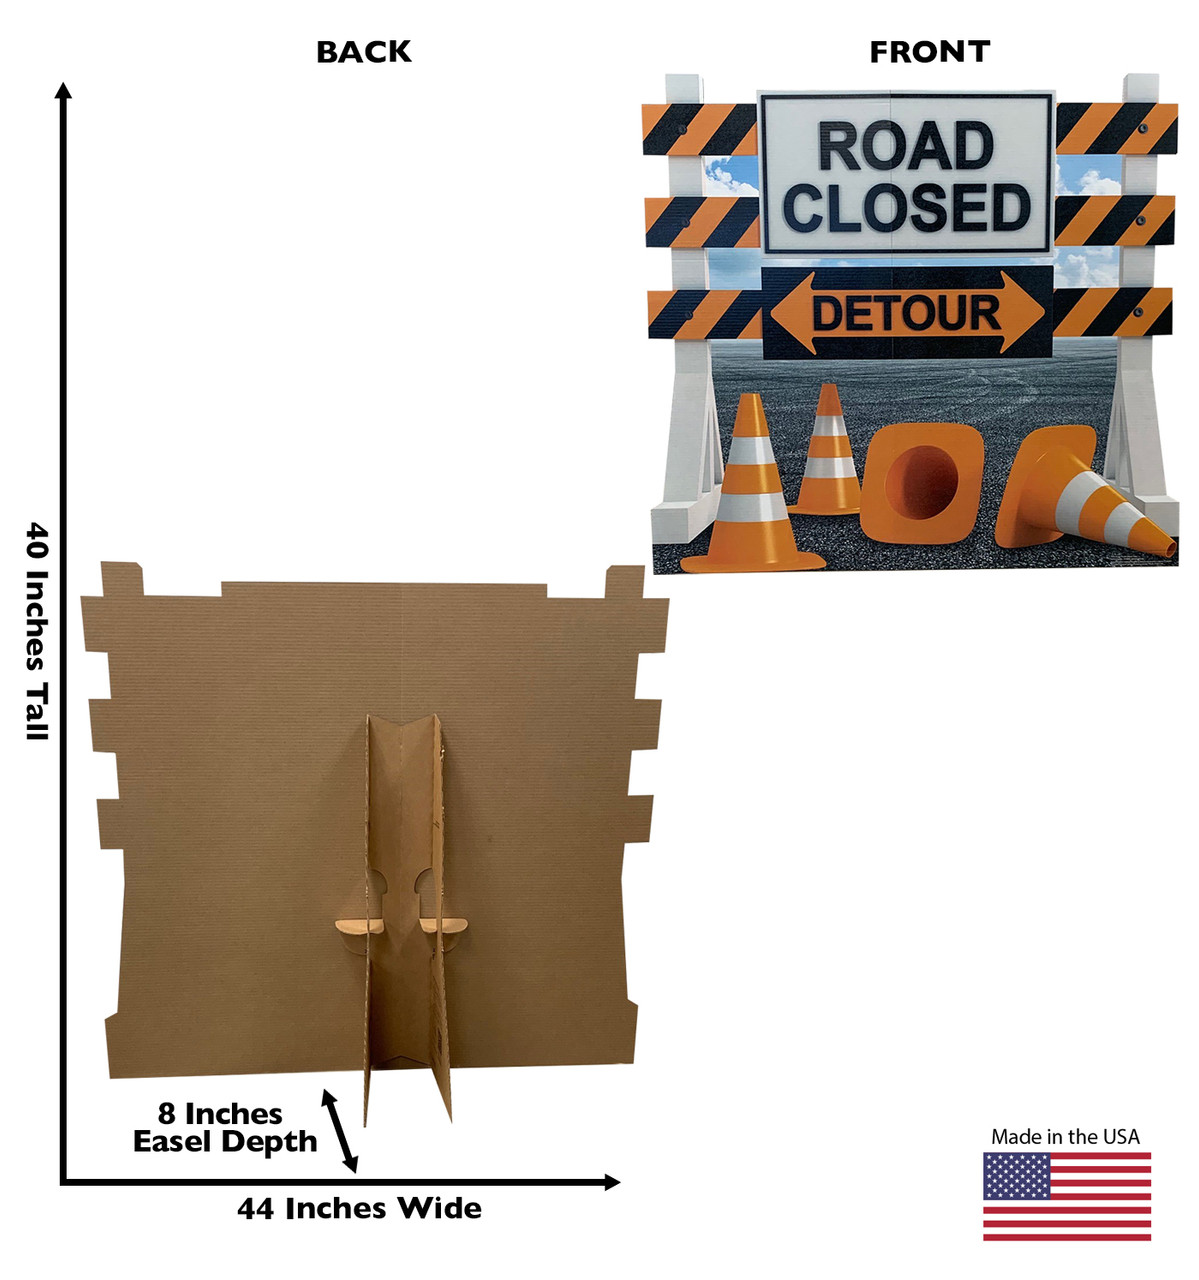 Life-size cardboard standee of a Road Closed Detour Sign Standee with back and front dimensions.